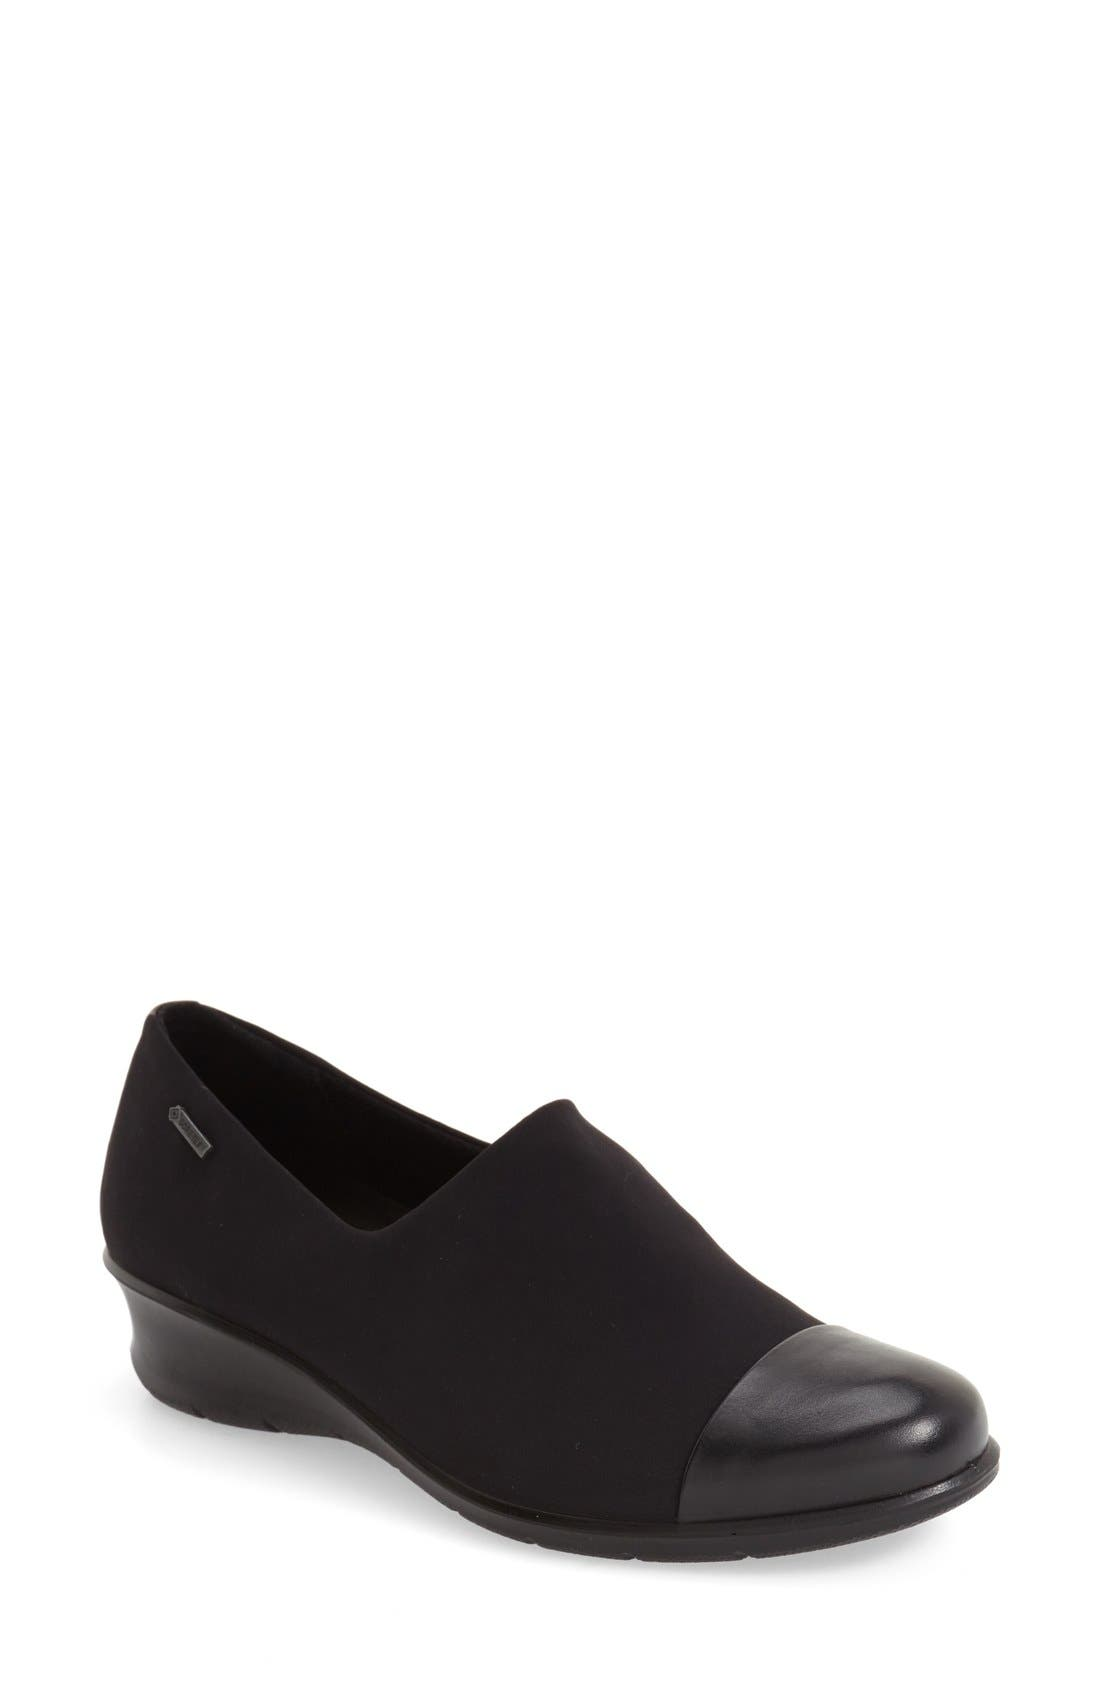 'Felicia GTX' Waterproof Wedge Loafer,                             Main thumbnail 1, color,                             BLACK GORE FABRIC